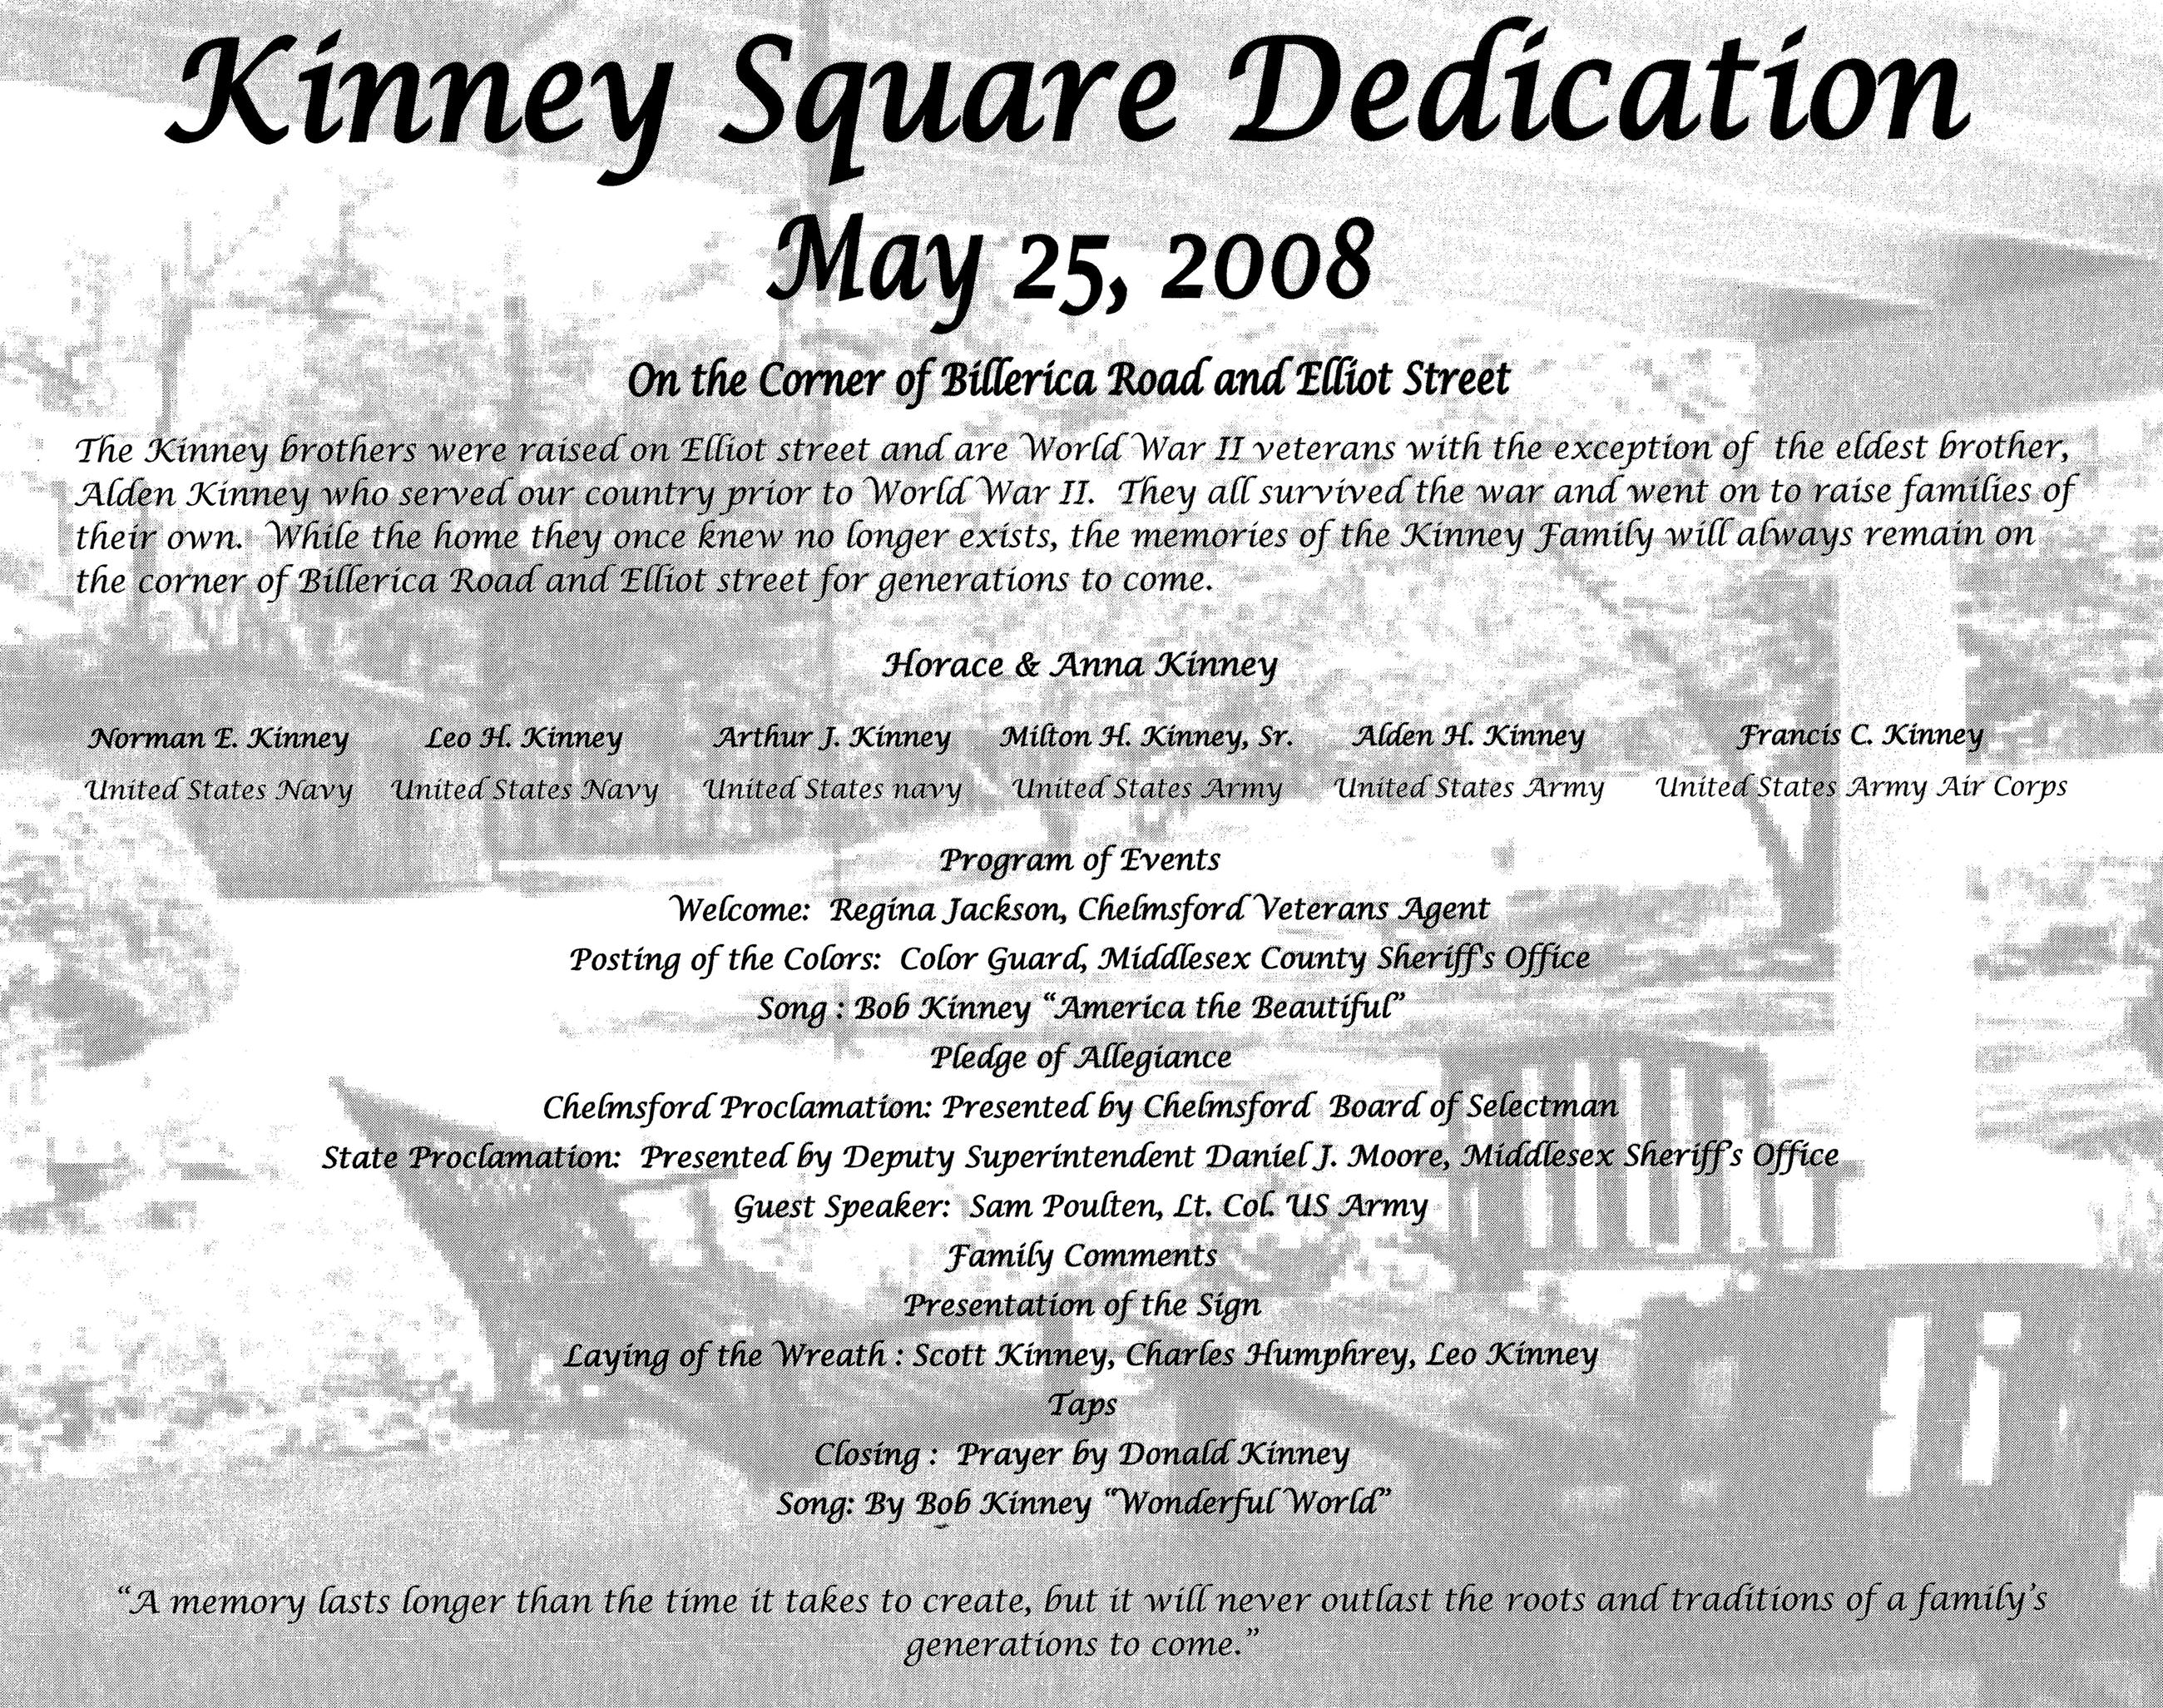 Kinney Square Dedication Program